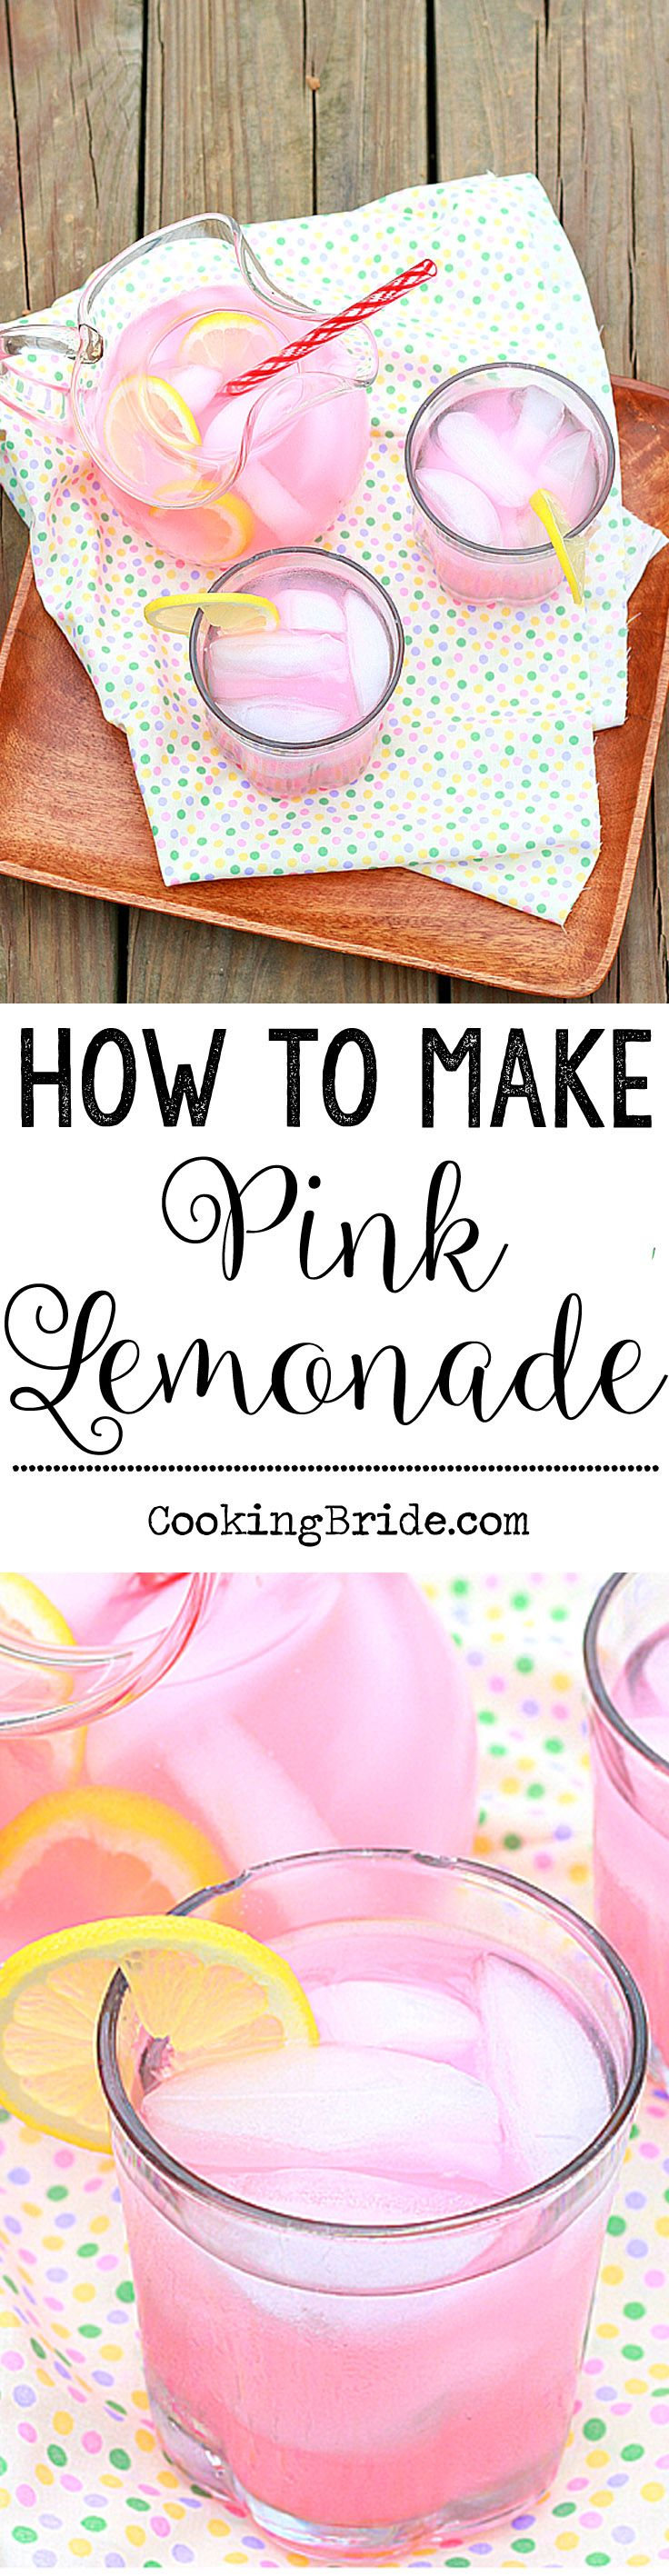 How to make homemade pink lemonade from scratch.